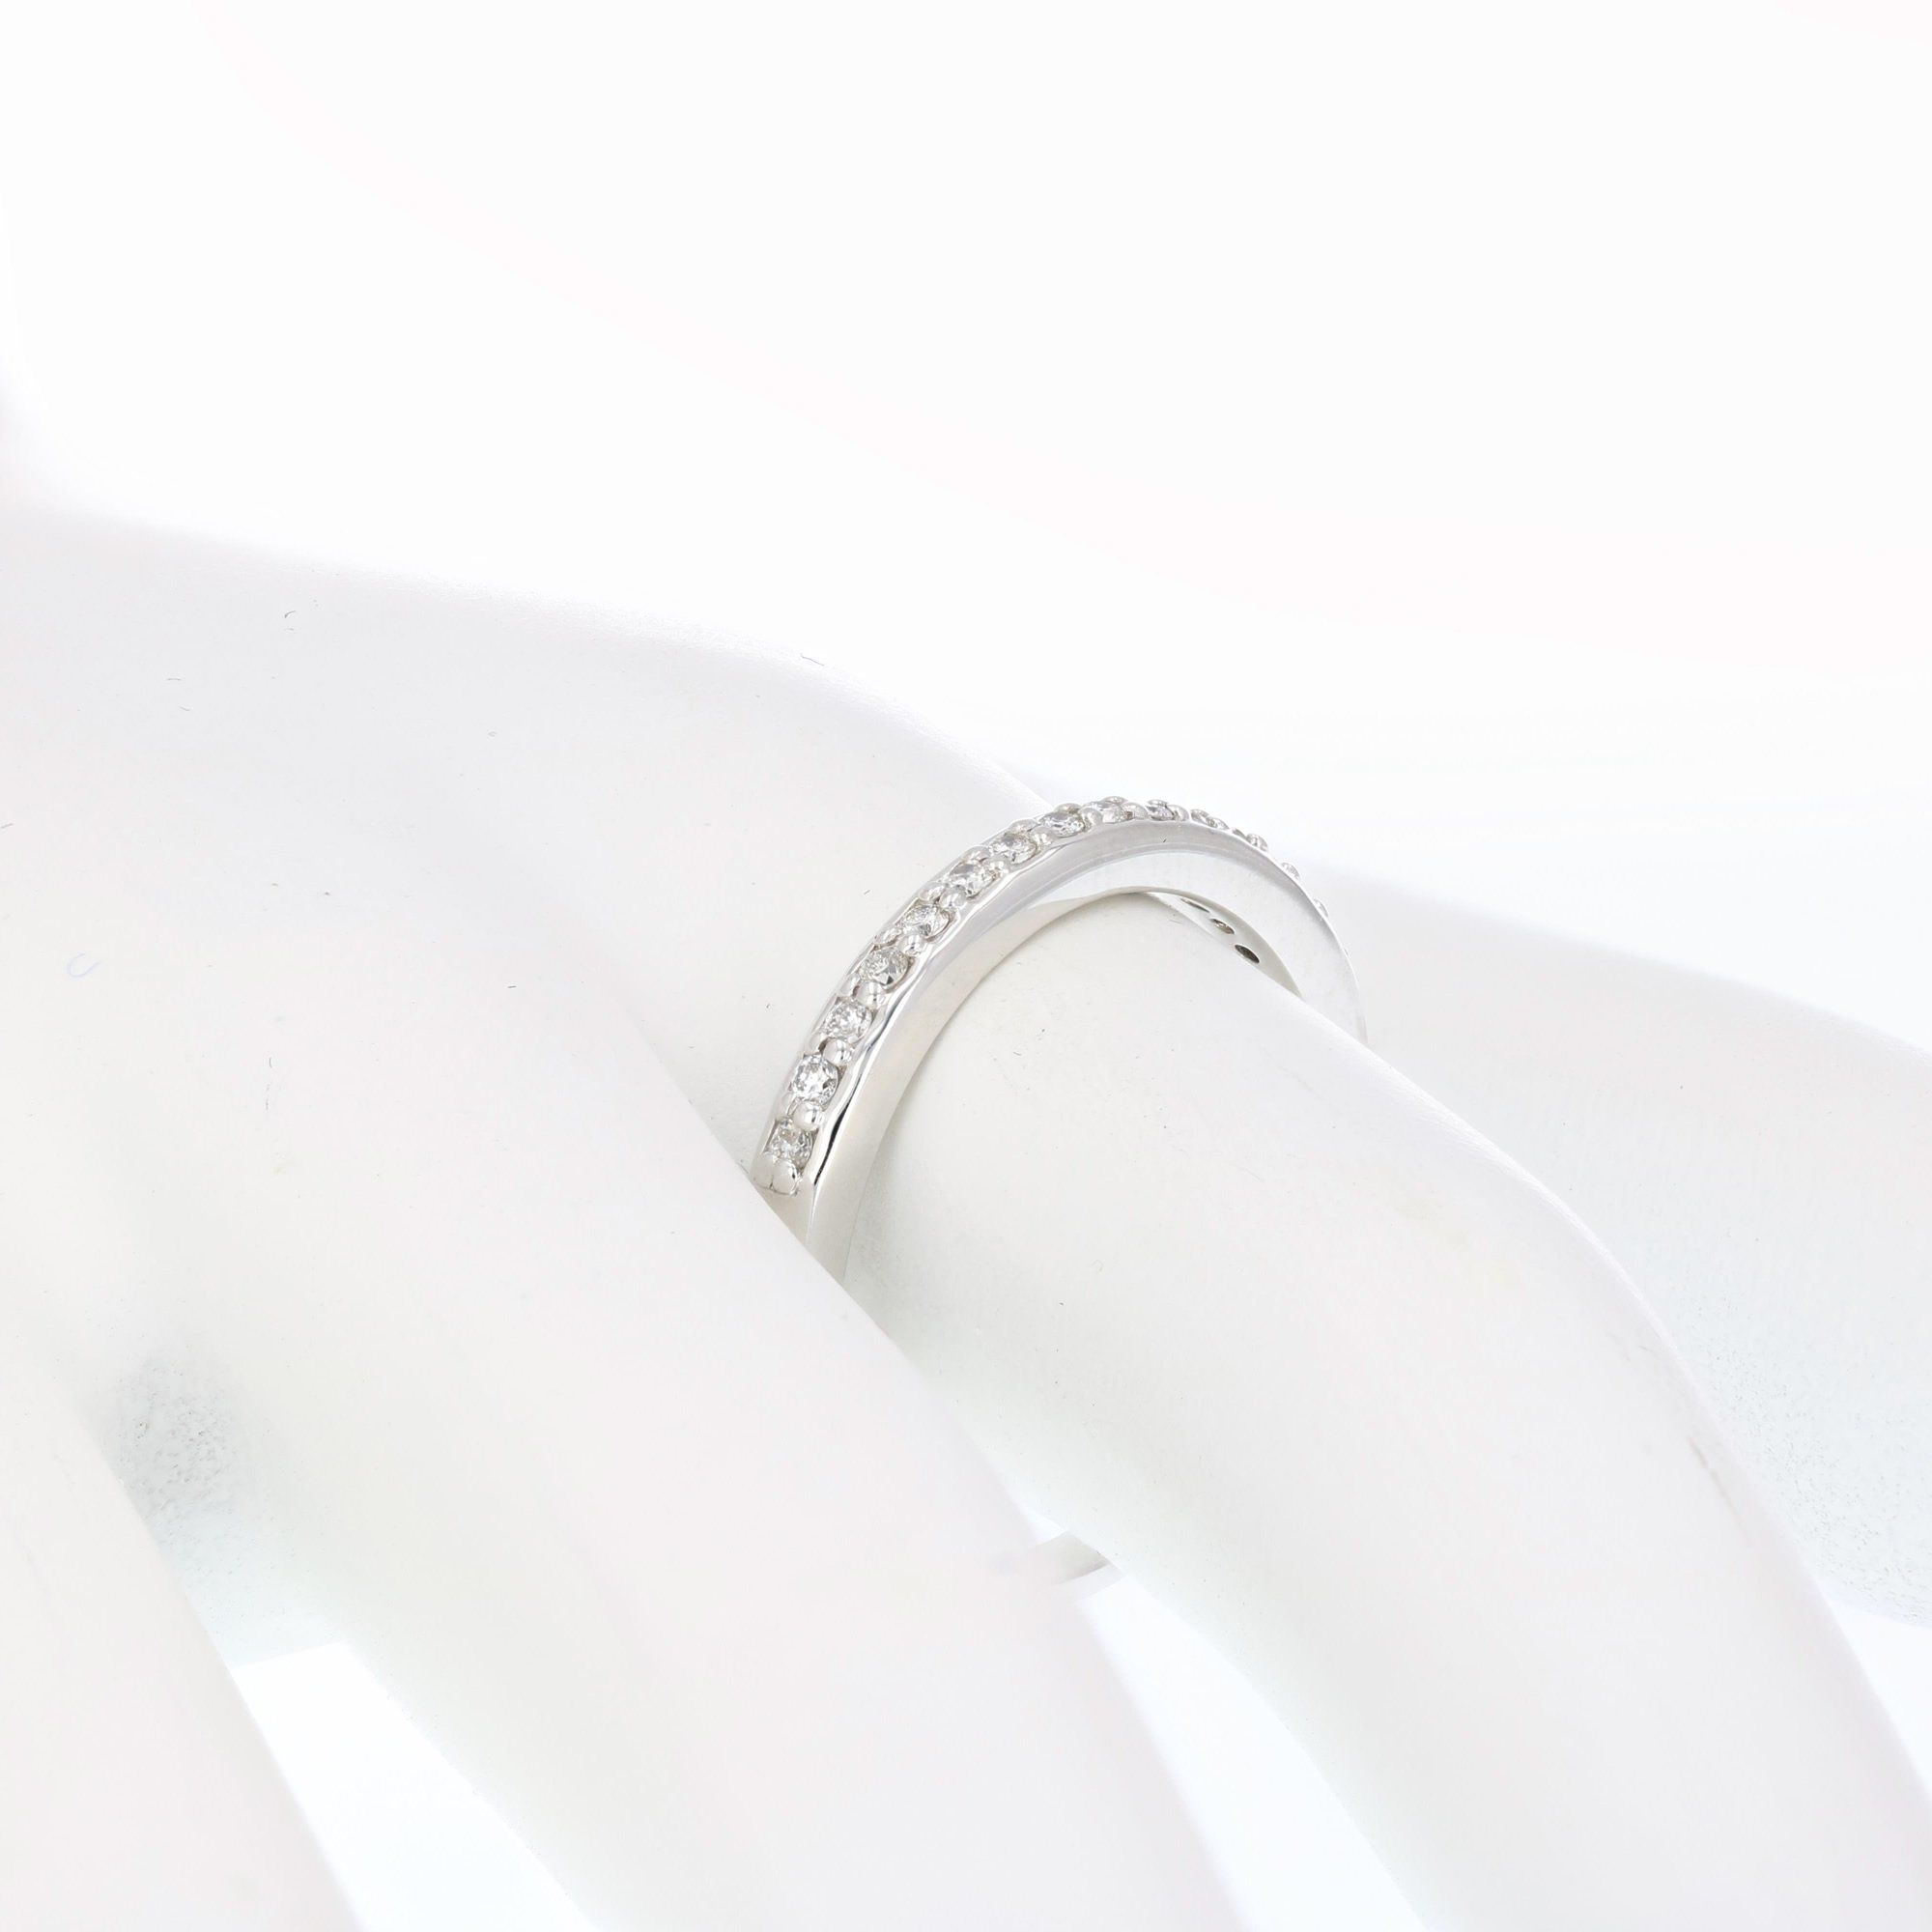 1/8 ctw Petite Diamond Wedding Band in 10K White Gold In Size 7.5